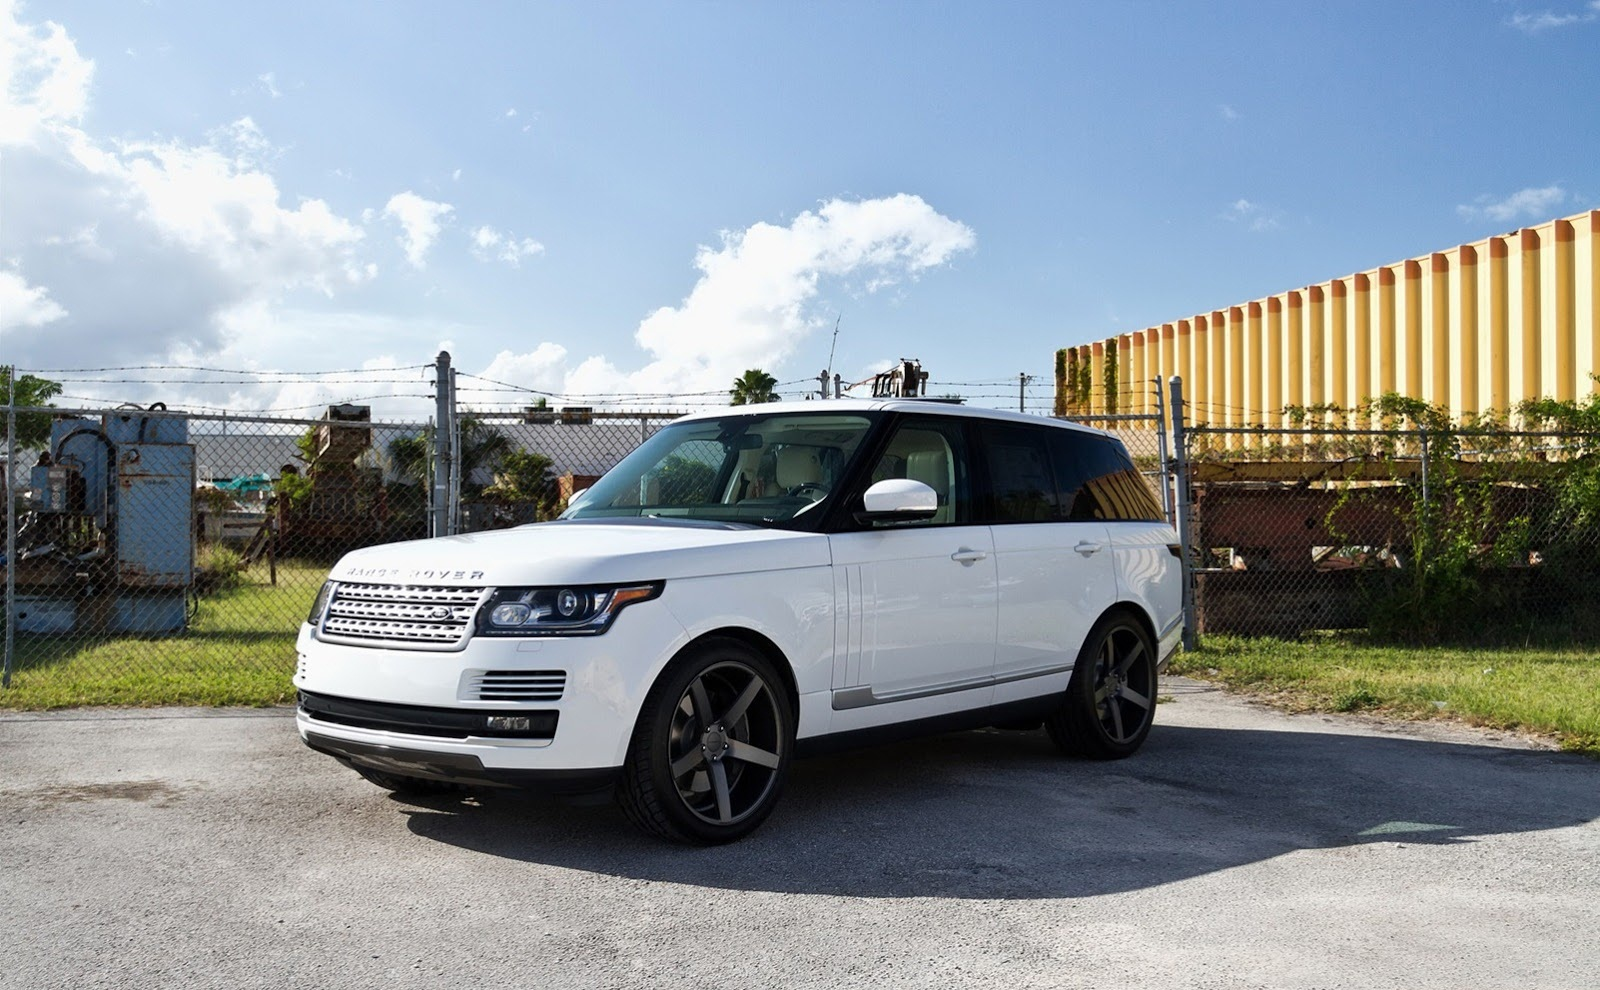 Land Rover ALL-NEW Range Rover #17